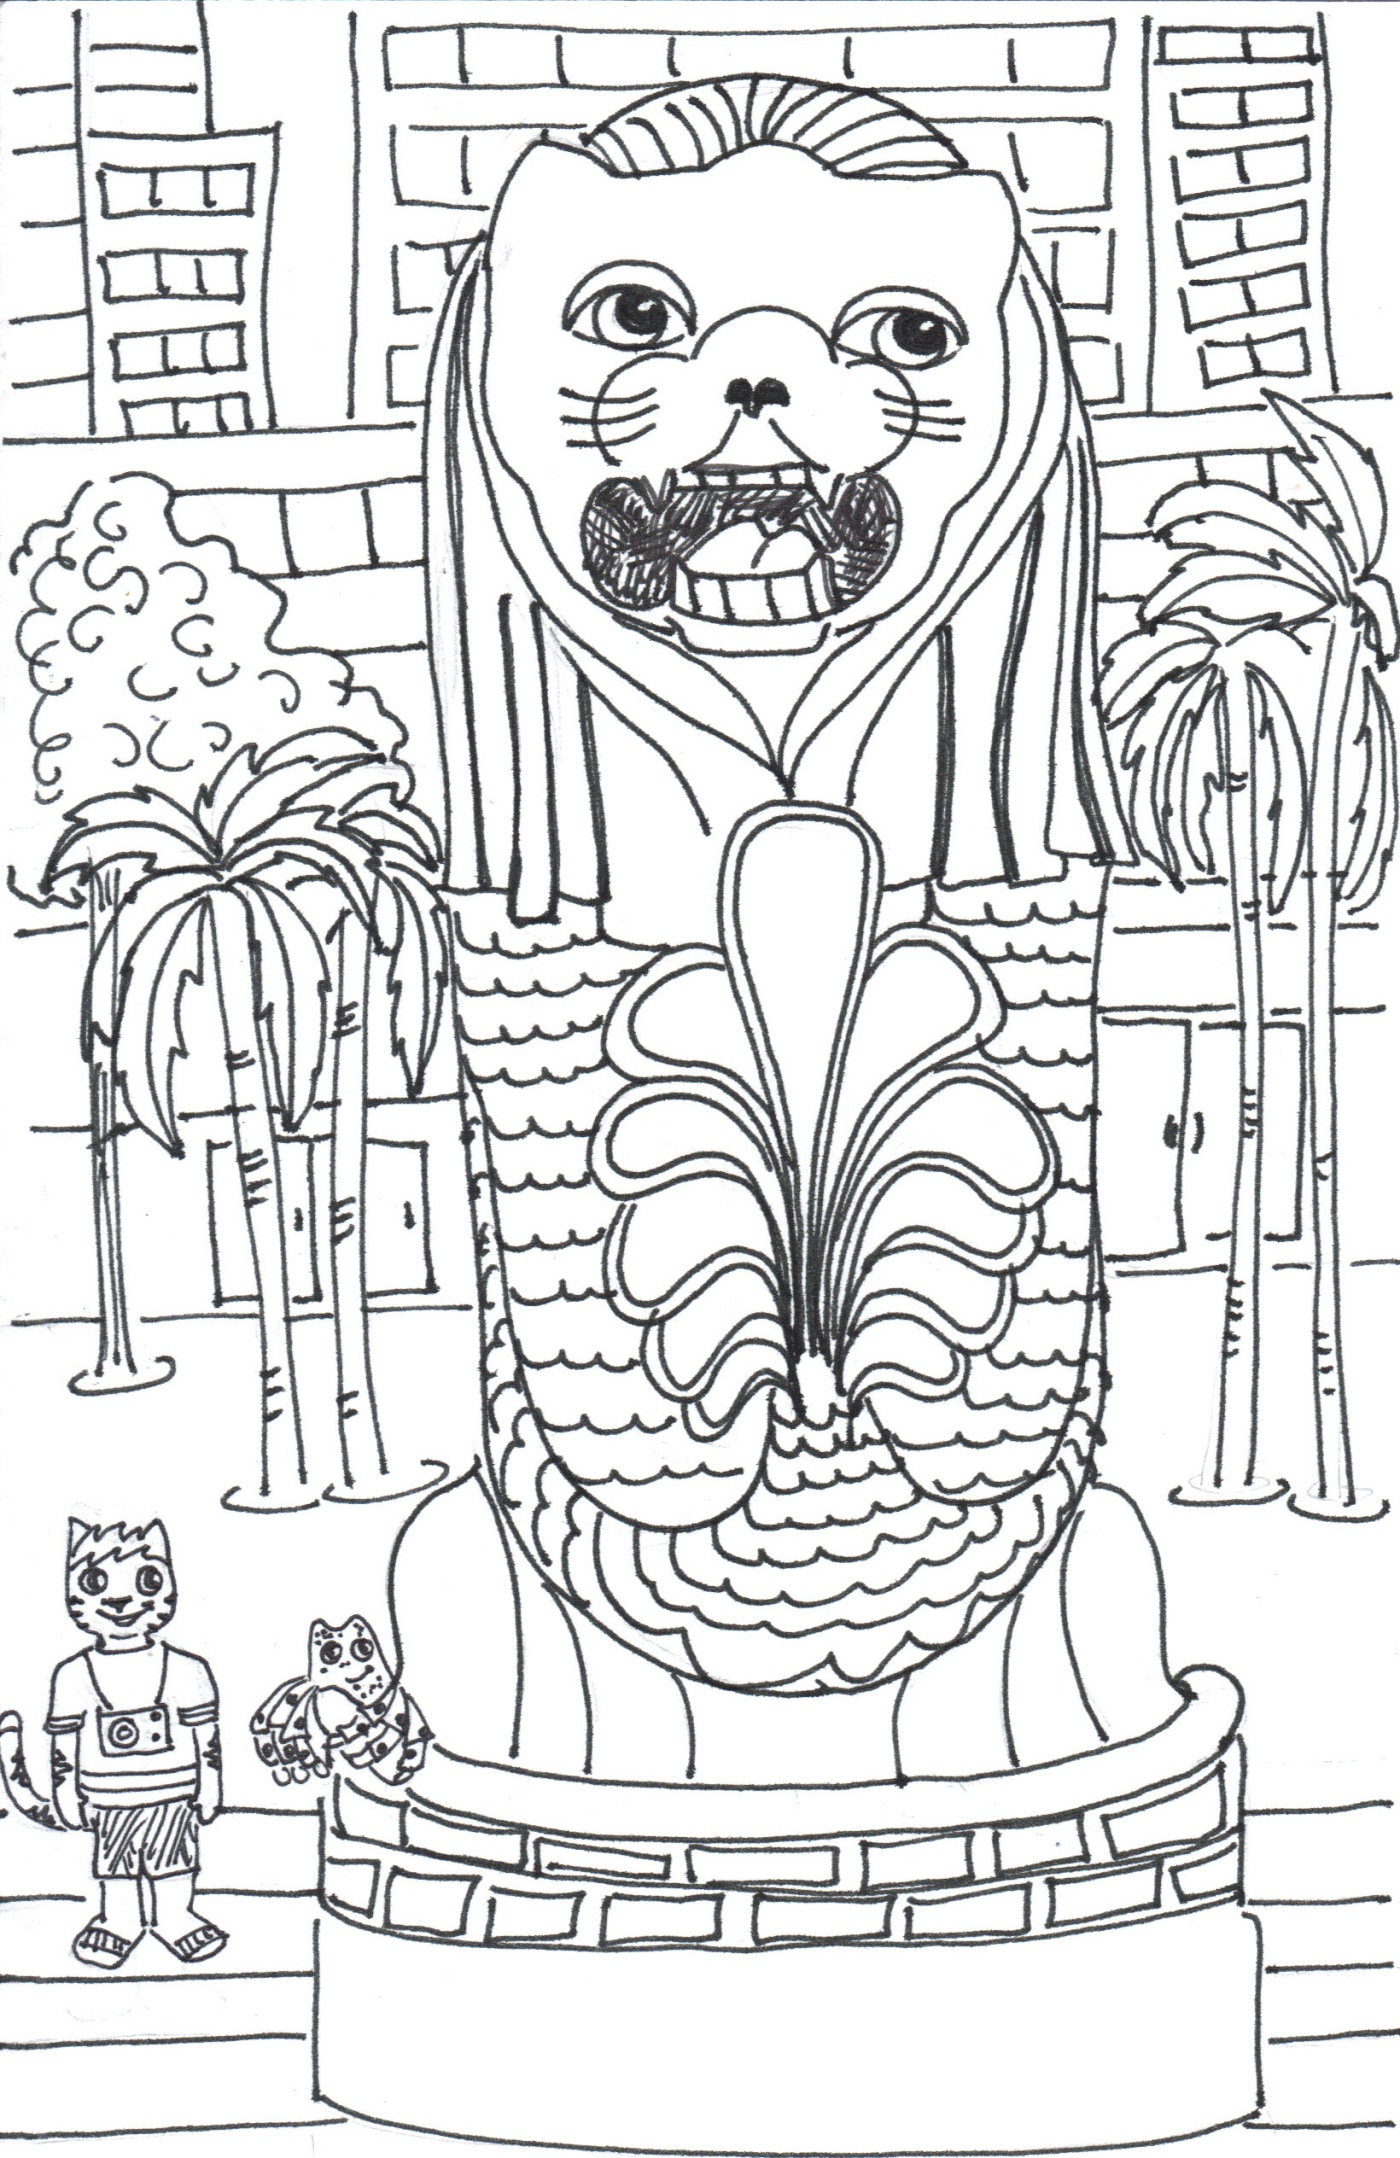 Colouring book for adults singapore - This Is A Merlion Statue At The Merlion Park In Singapore A Merlion Is A Half Lion And Half Mermaid It Is A Little Hard To Tell